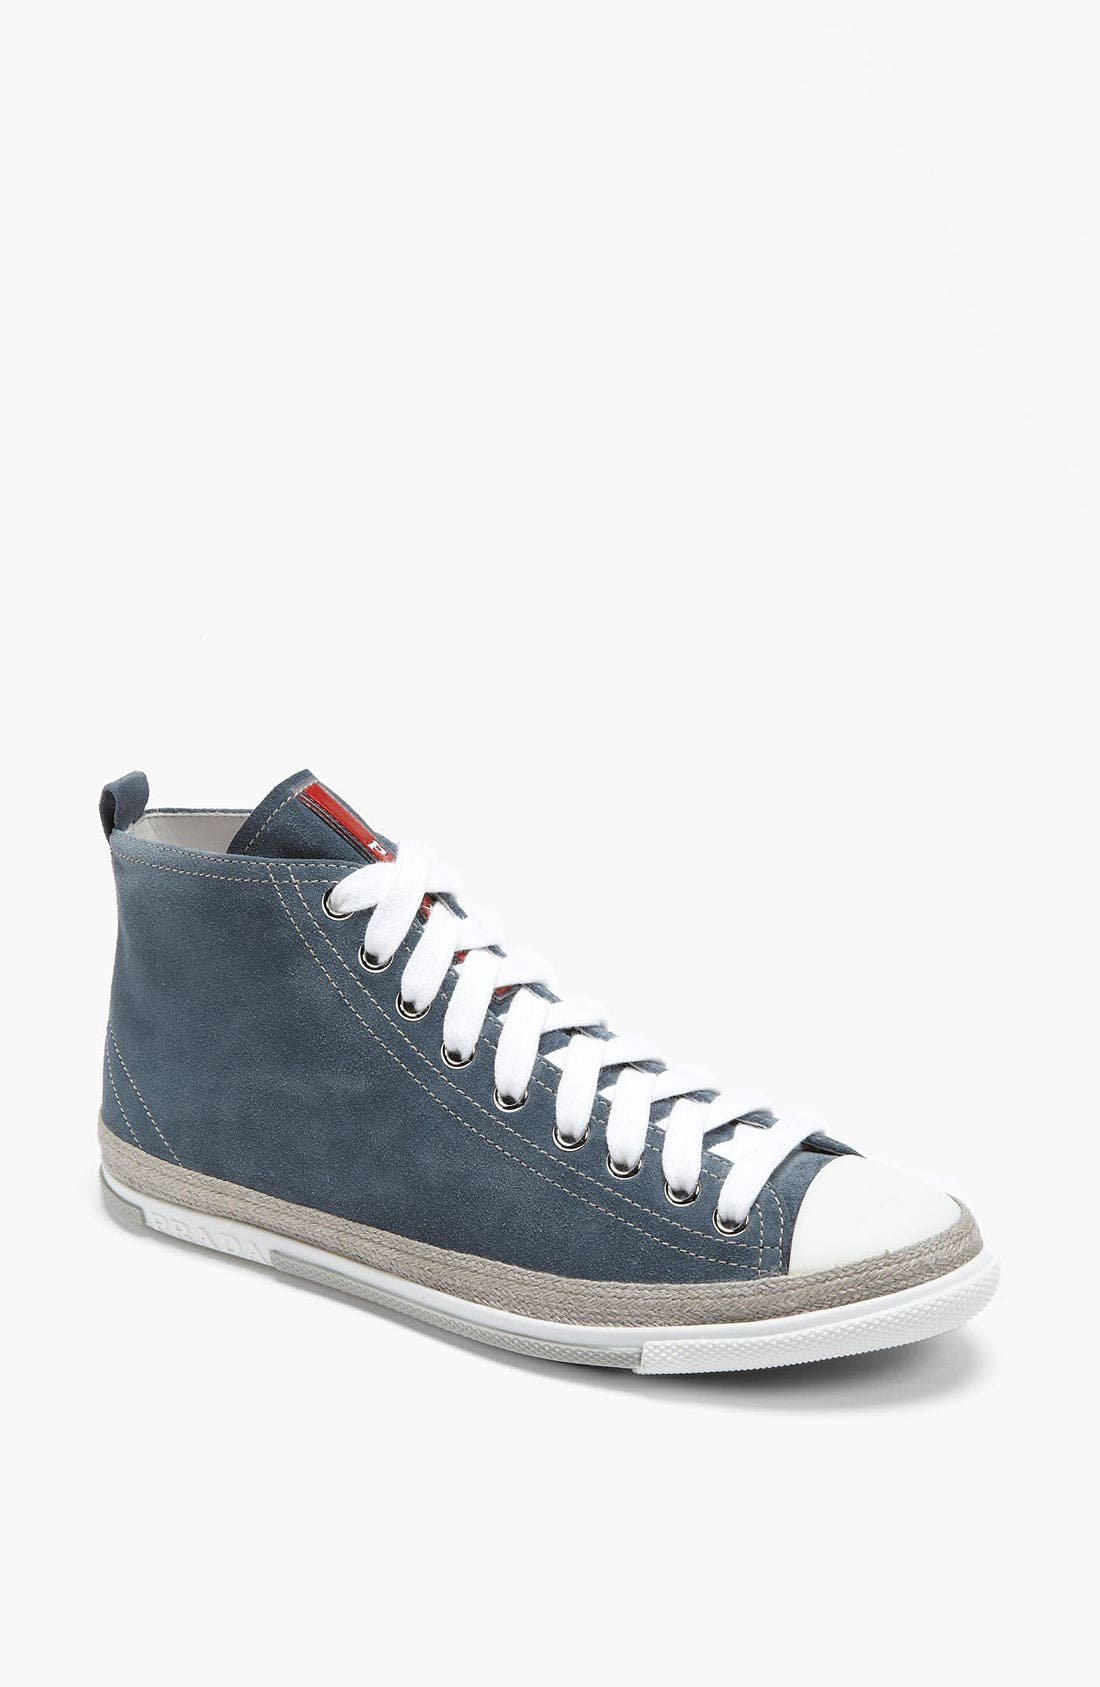 Main Image - Prada High Top Sneaker